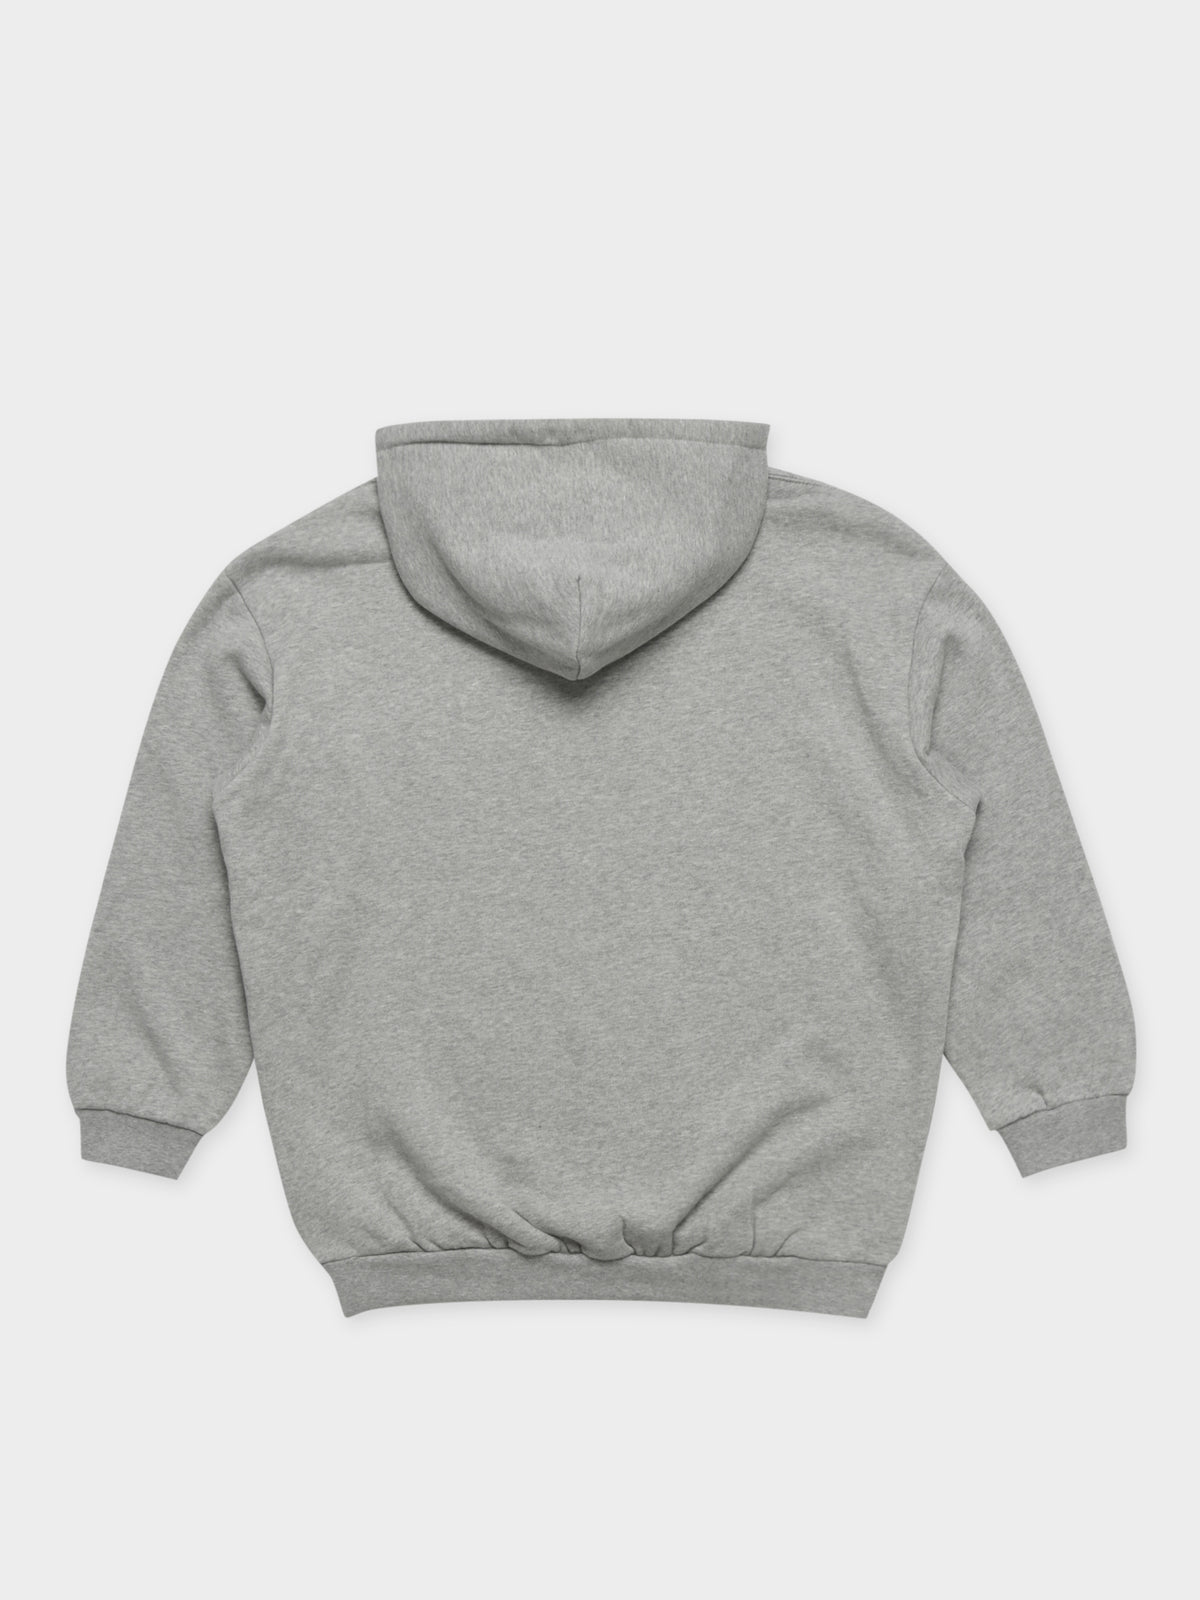 World League Oversized Boyfriend Hoodie in Grey Marle